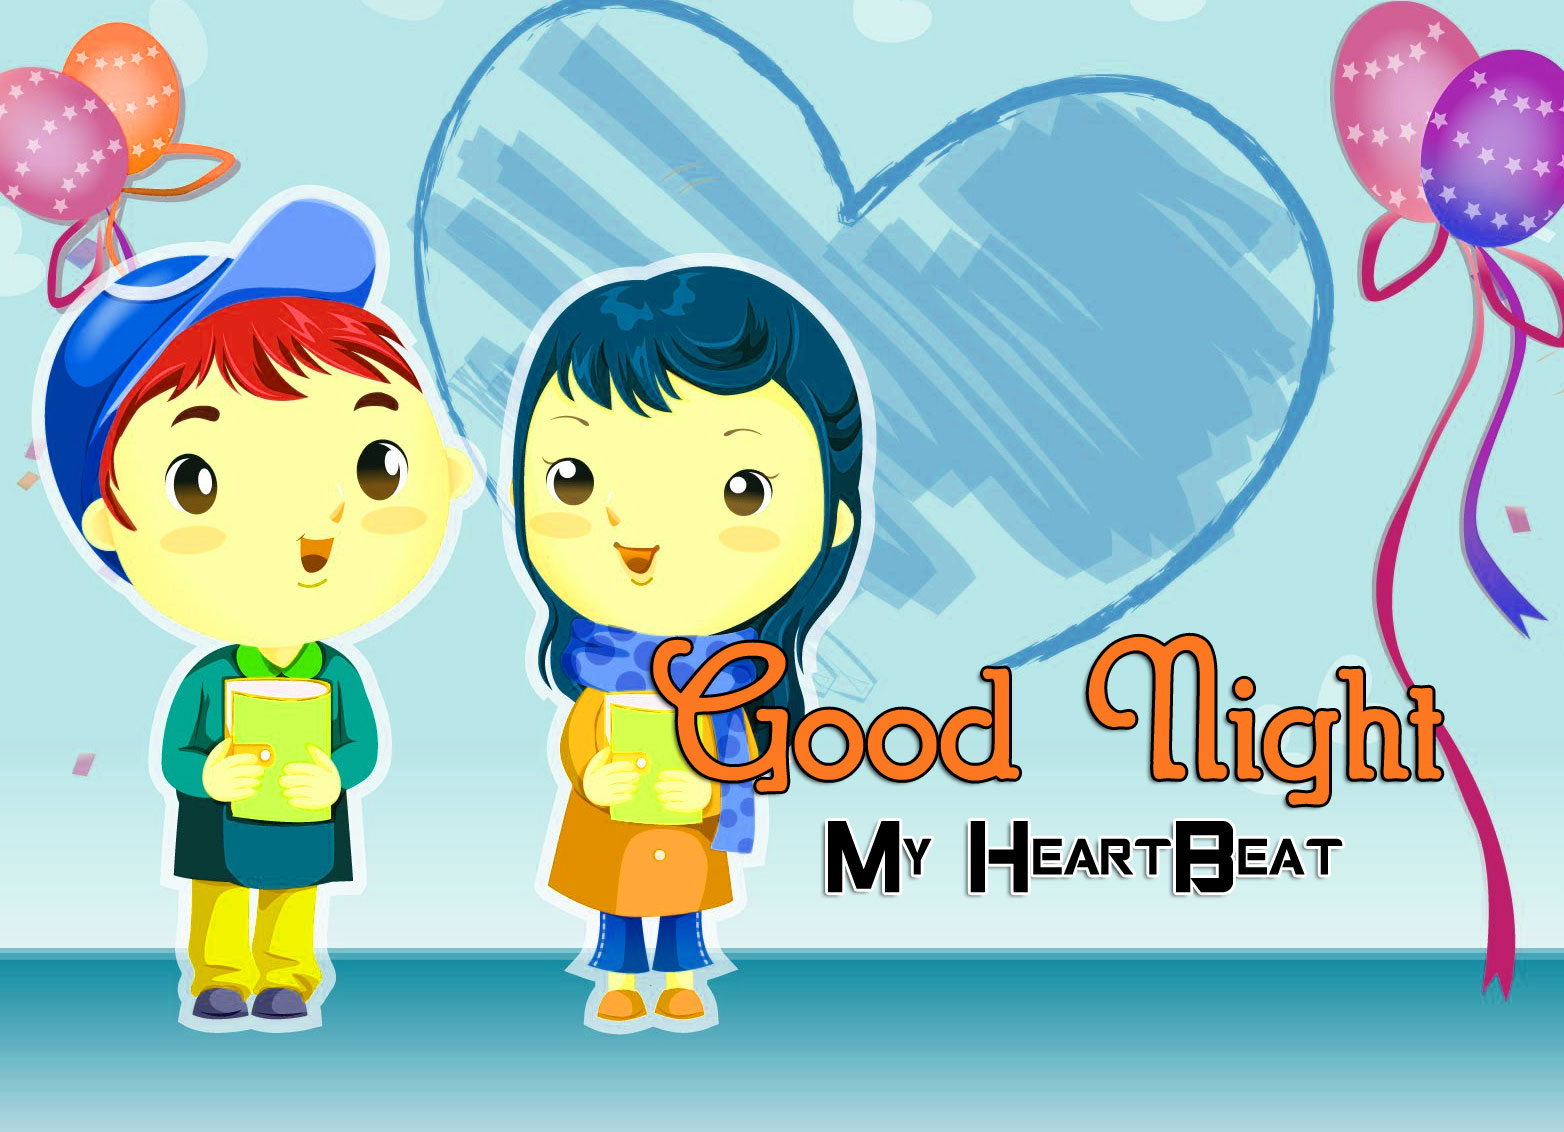 Girlfriend Good Night Wishes Wallpaper With Cartoon